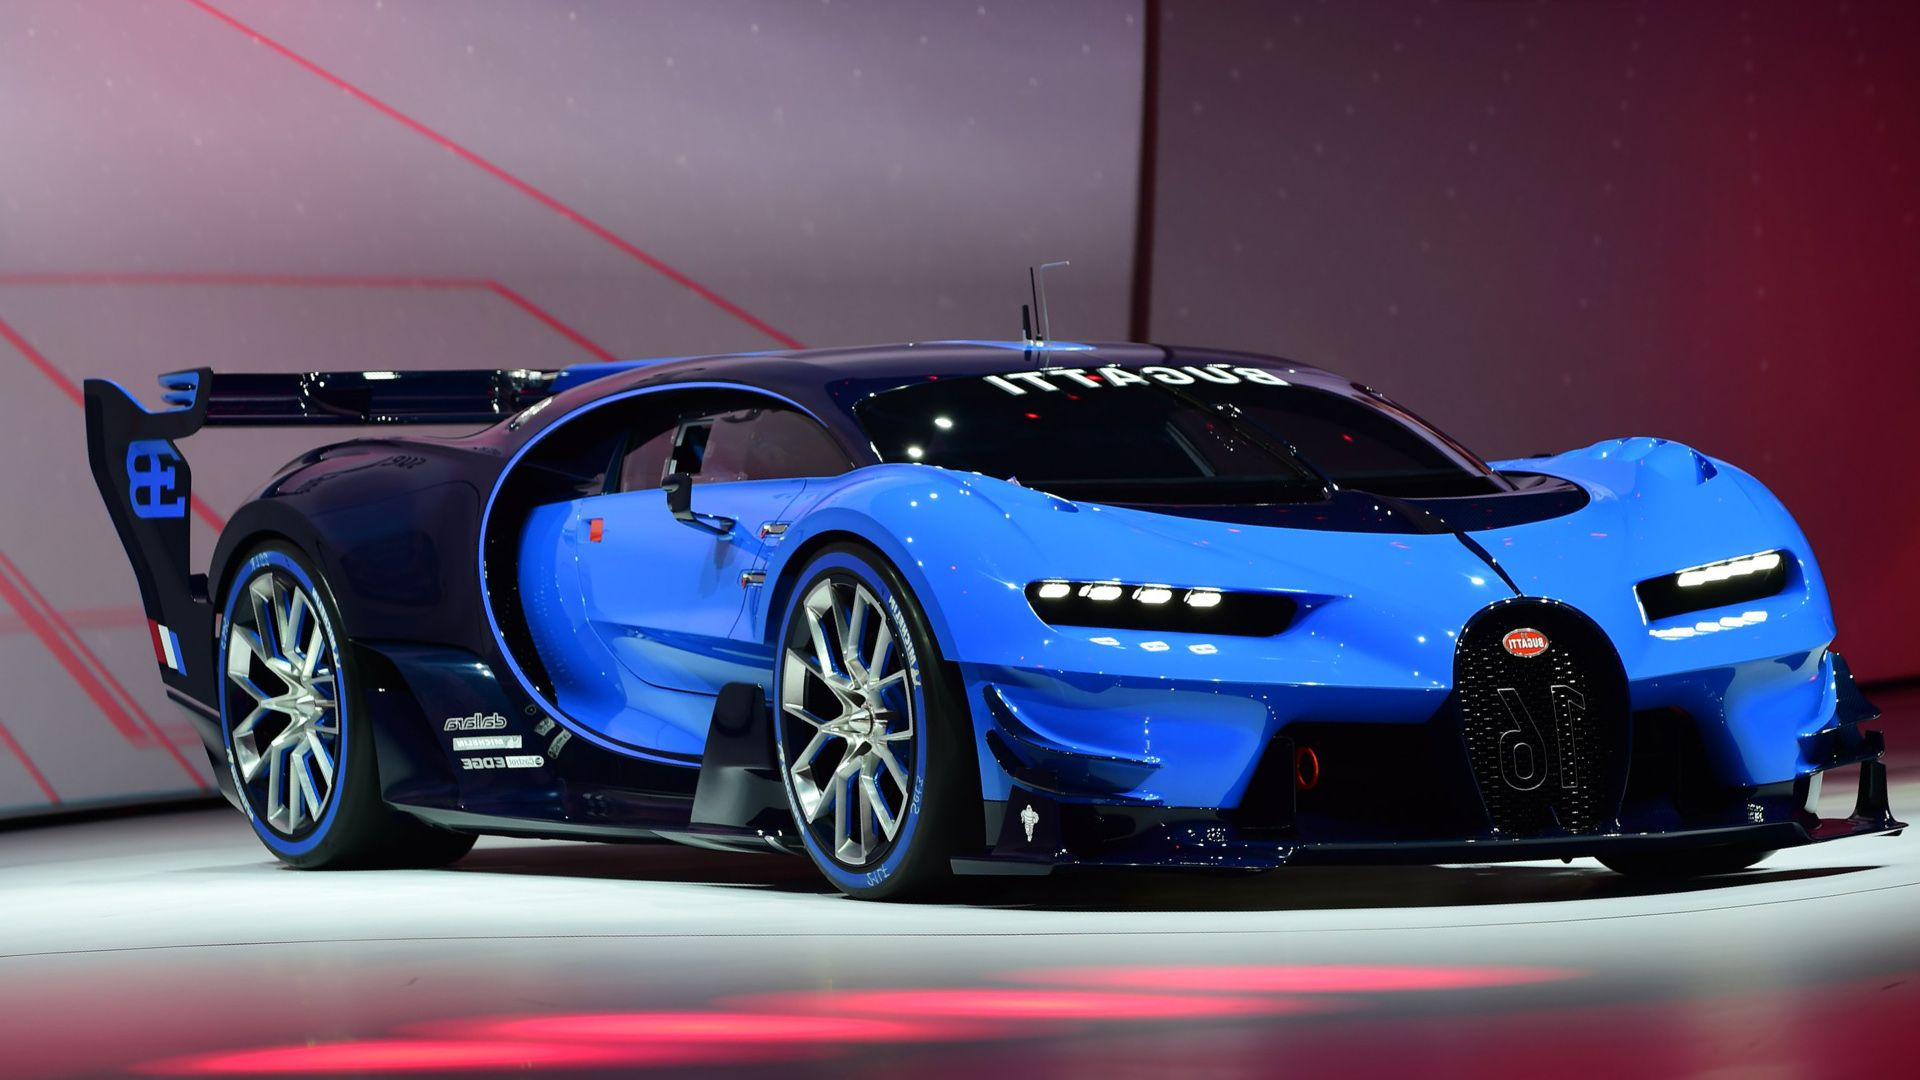 2017 bugatti chiron geneva auto show 2016 wallpapers 72 wallpapers hd wallpapers. Black Bedroom Furniture Sets. Home Design Ideas